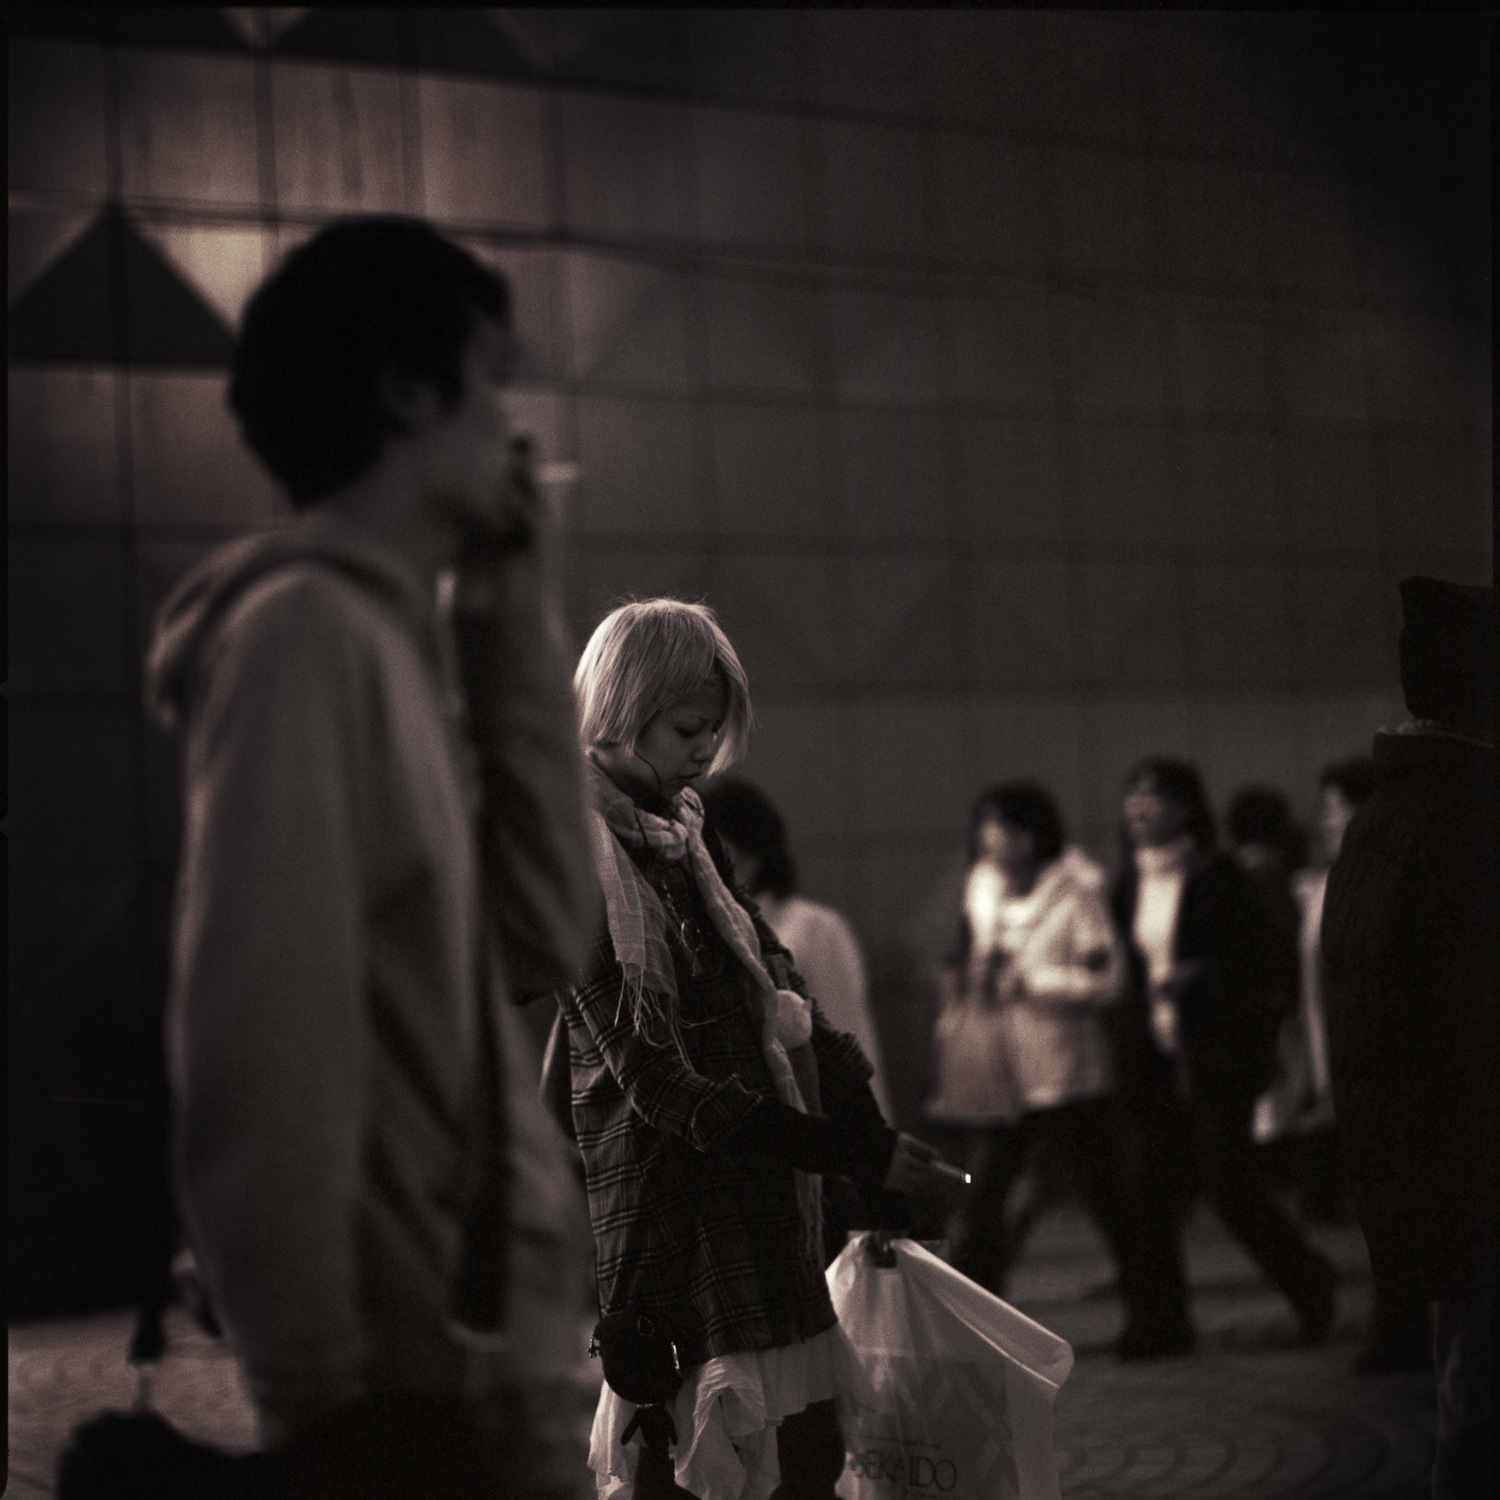 girl-smoking-at-shinjuku.jpg